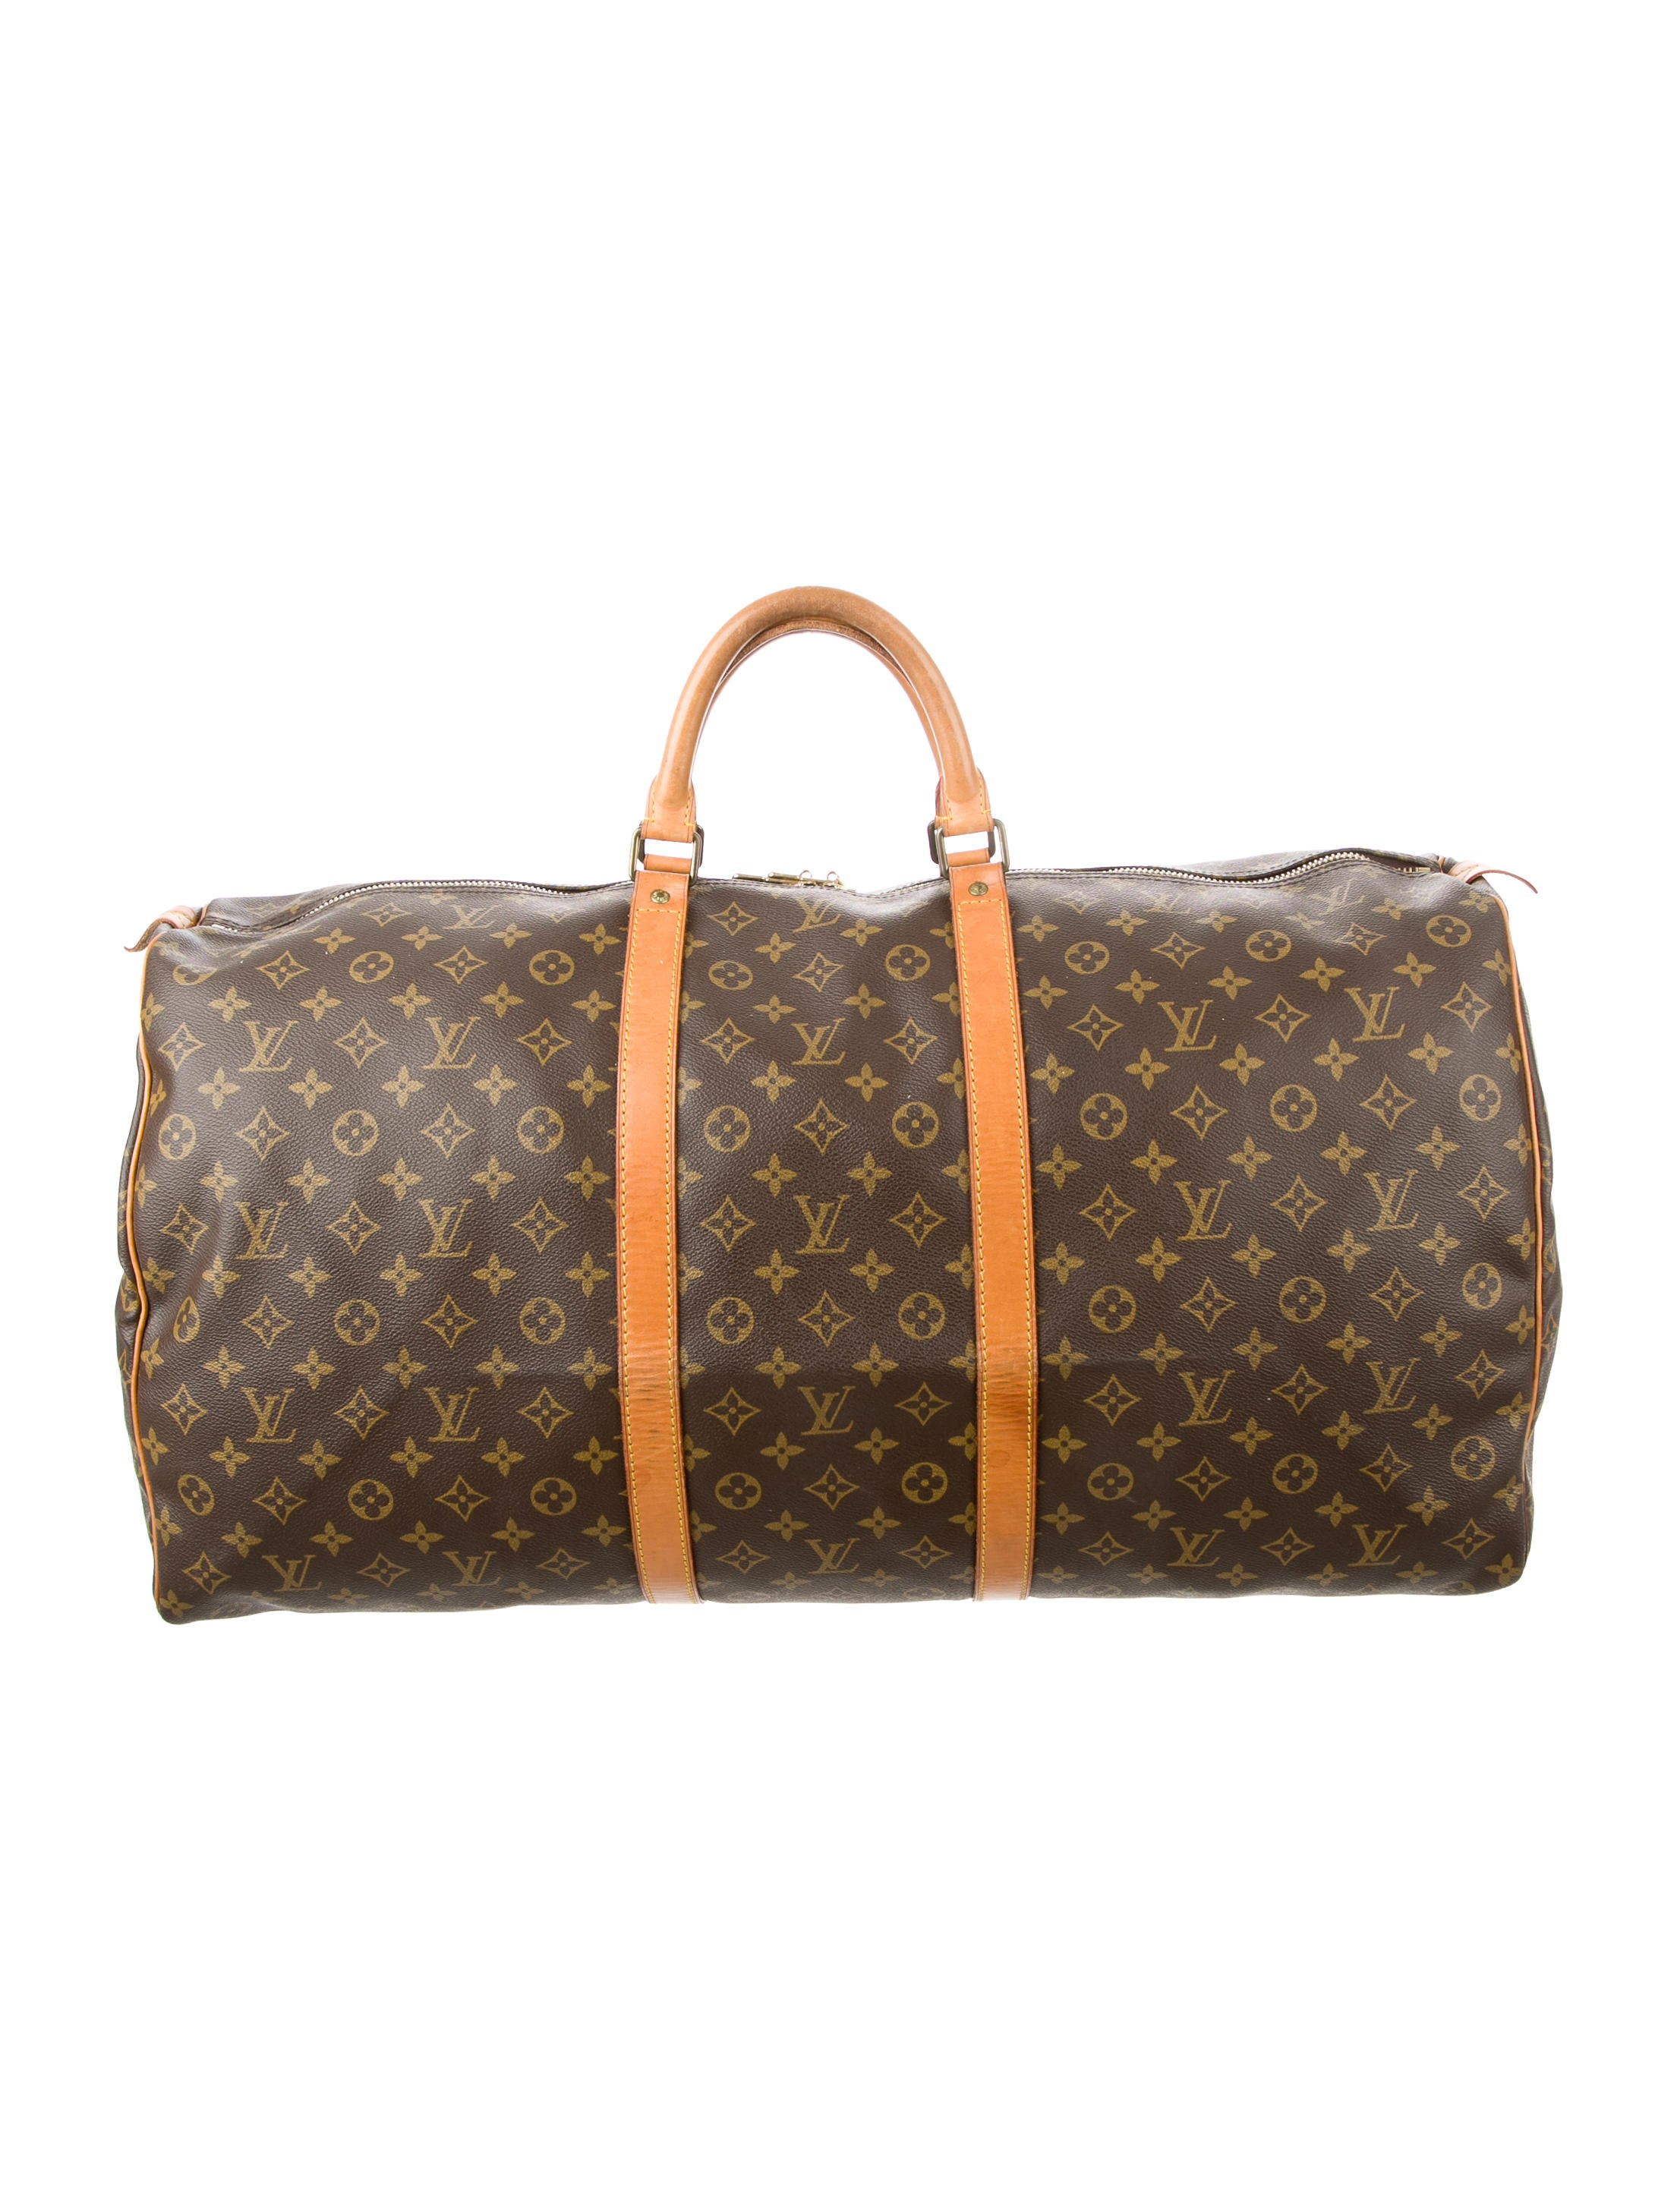 louis vuitton monogram keepall 50 handbags lou106463 the realreal. Black Bedroom Furniture Sets. Home Design Ideas